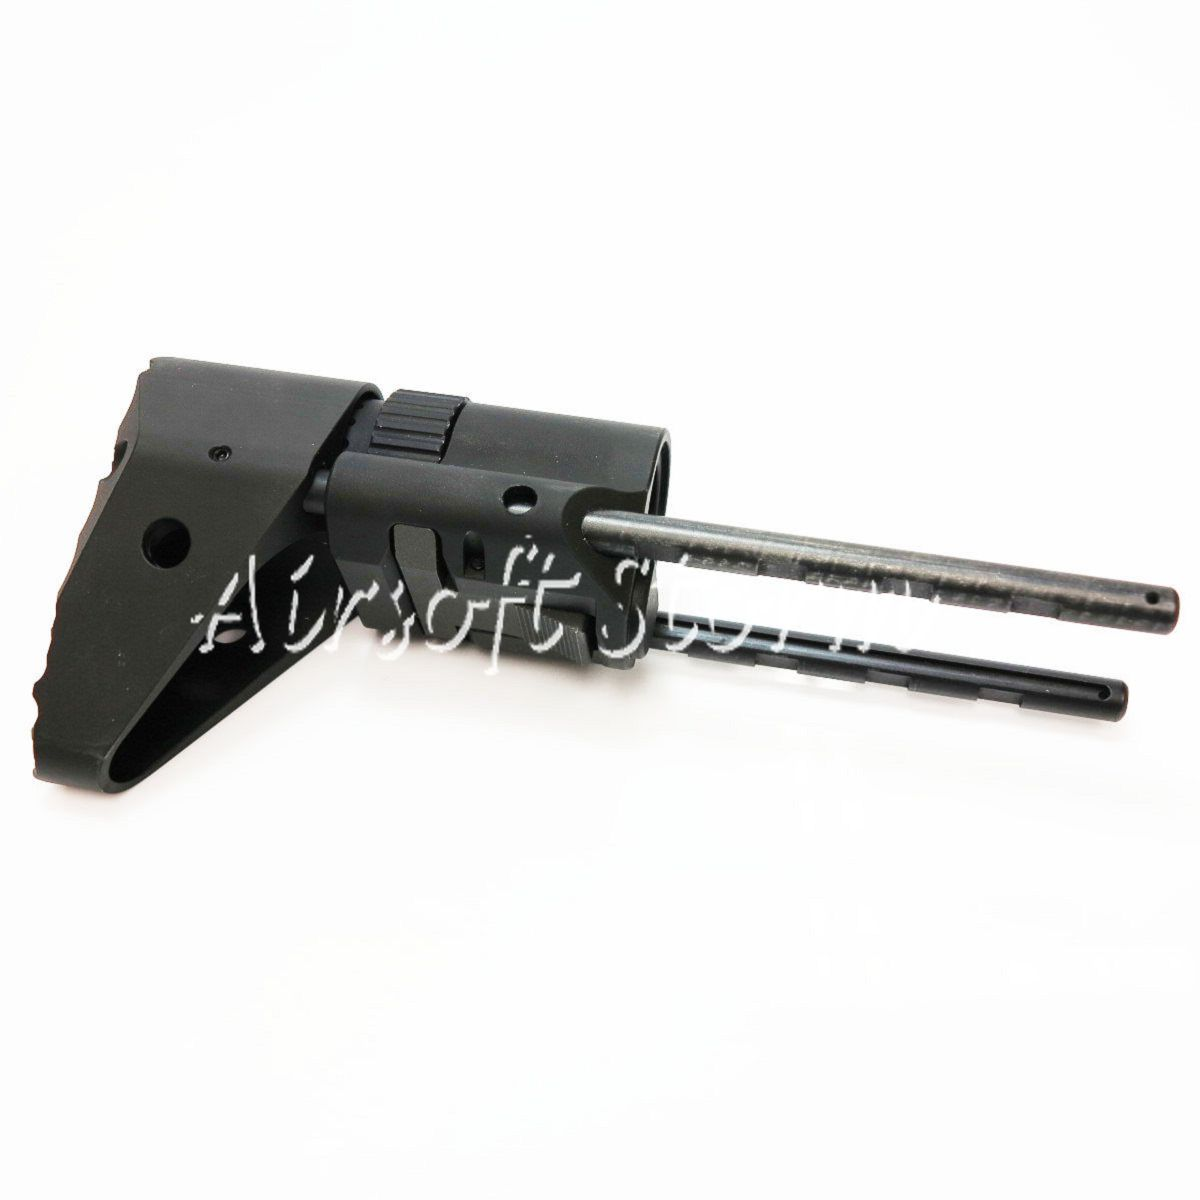 Airsoft AEG Tactical Shooting Gear 5KU PDW Retractable Stock for M-Series AEG